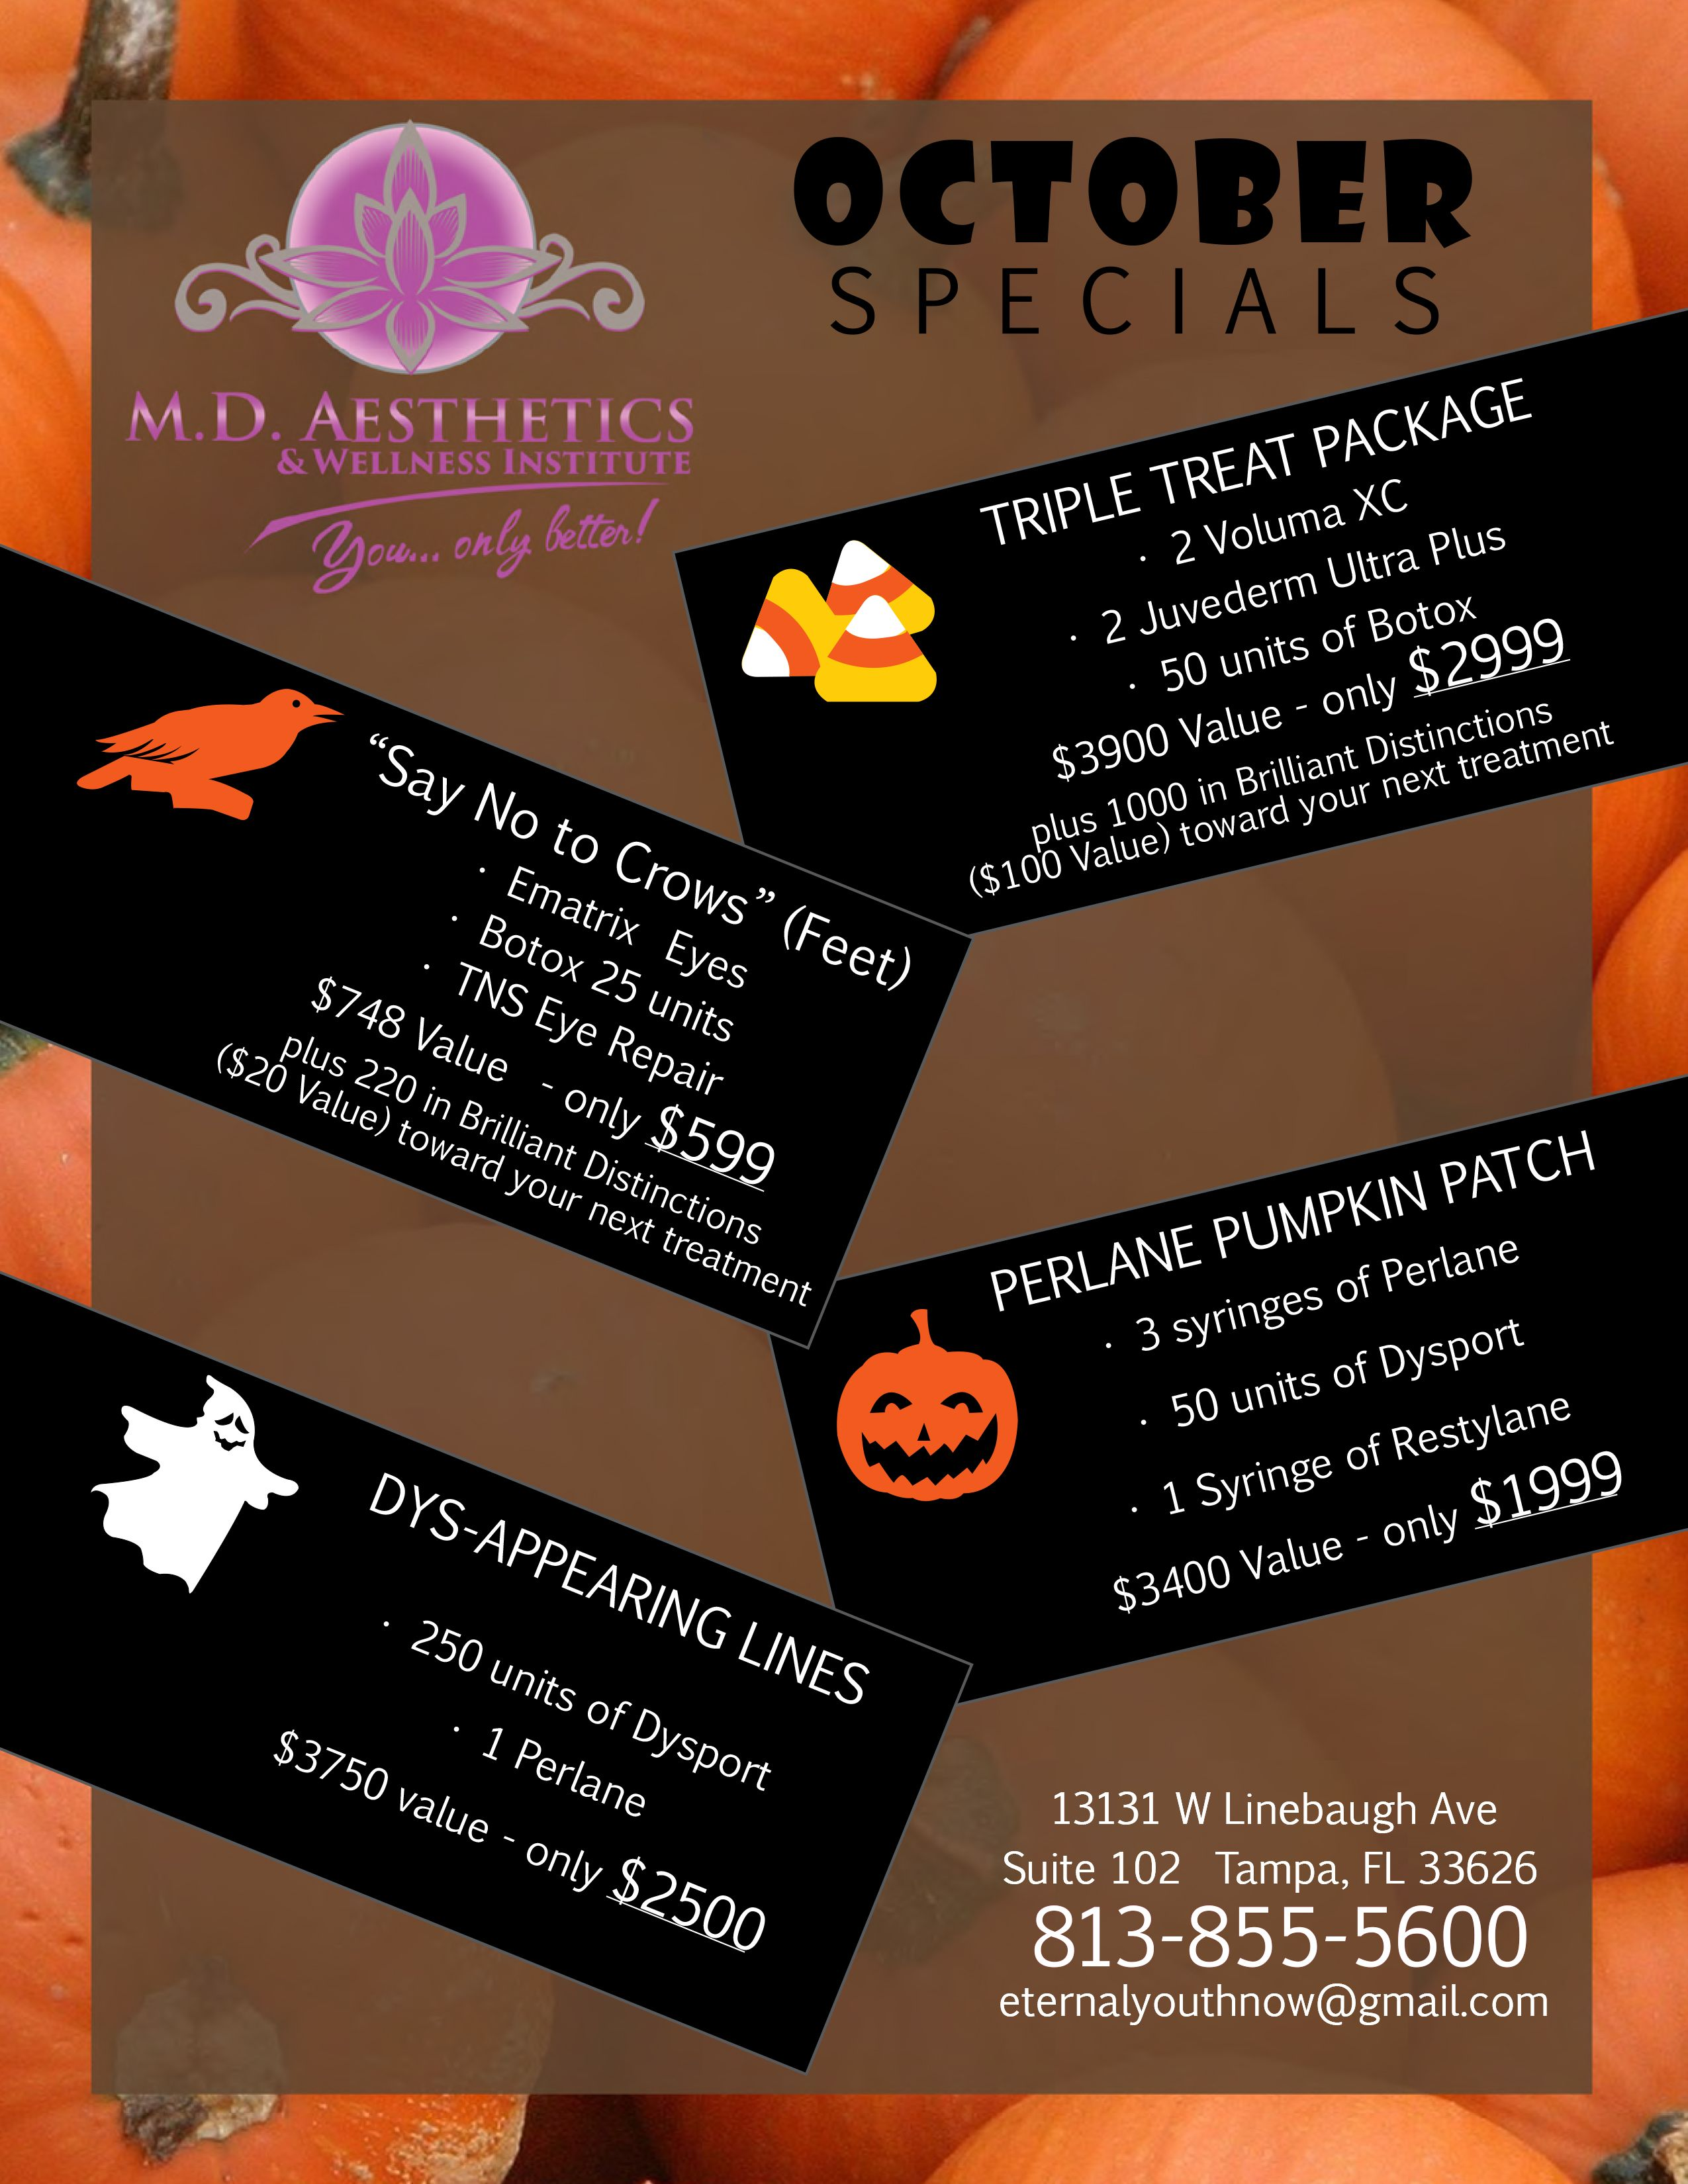 Awesome October Anti Aging Specials At Md Aesthetics Wellness Institute No Tricks Here Only Treats Botox Juv Med Spa Marketing Spa Marketing Botox Party